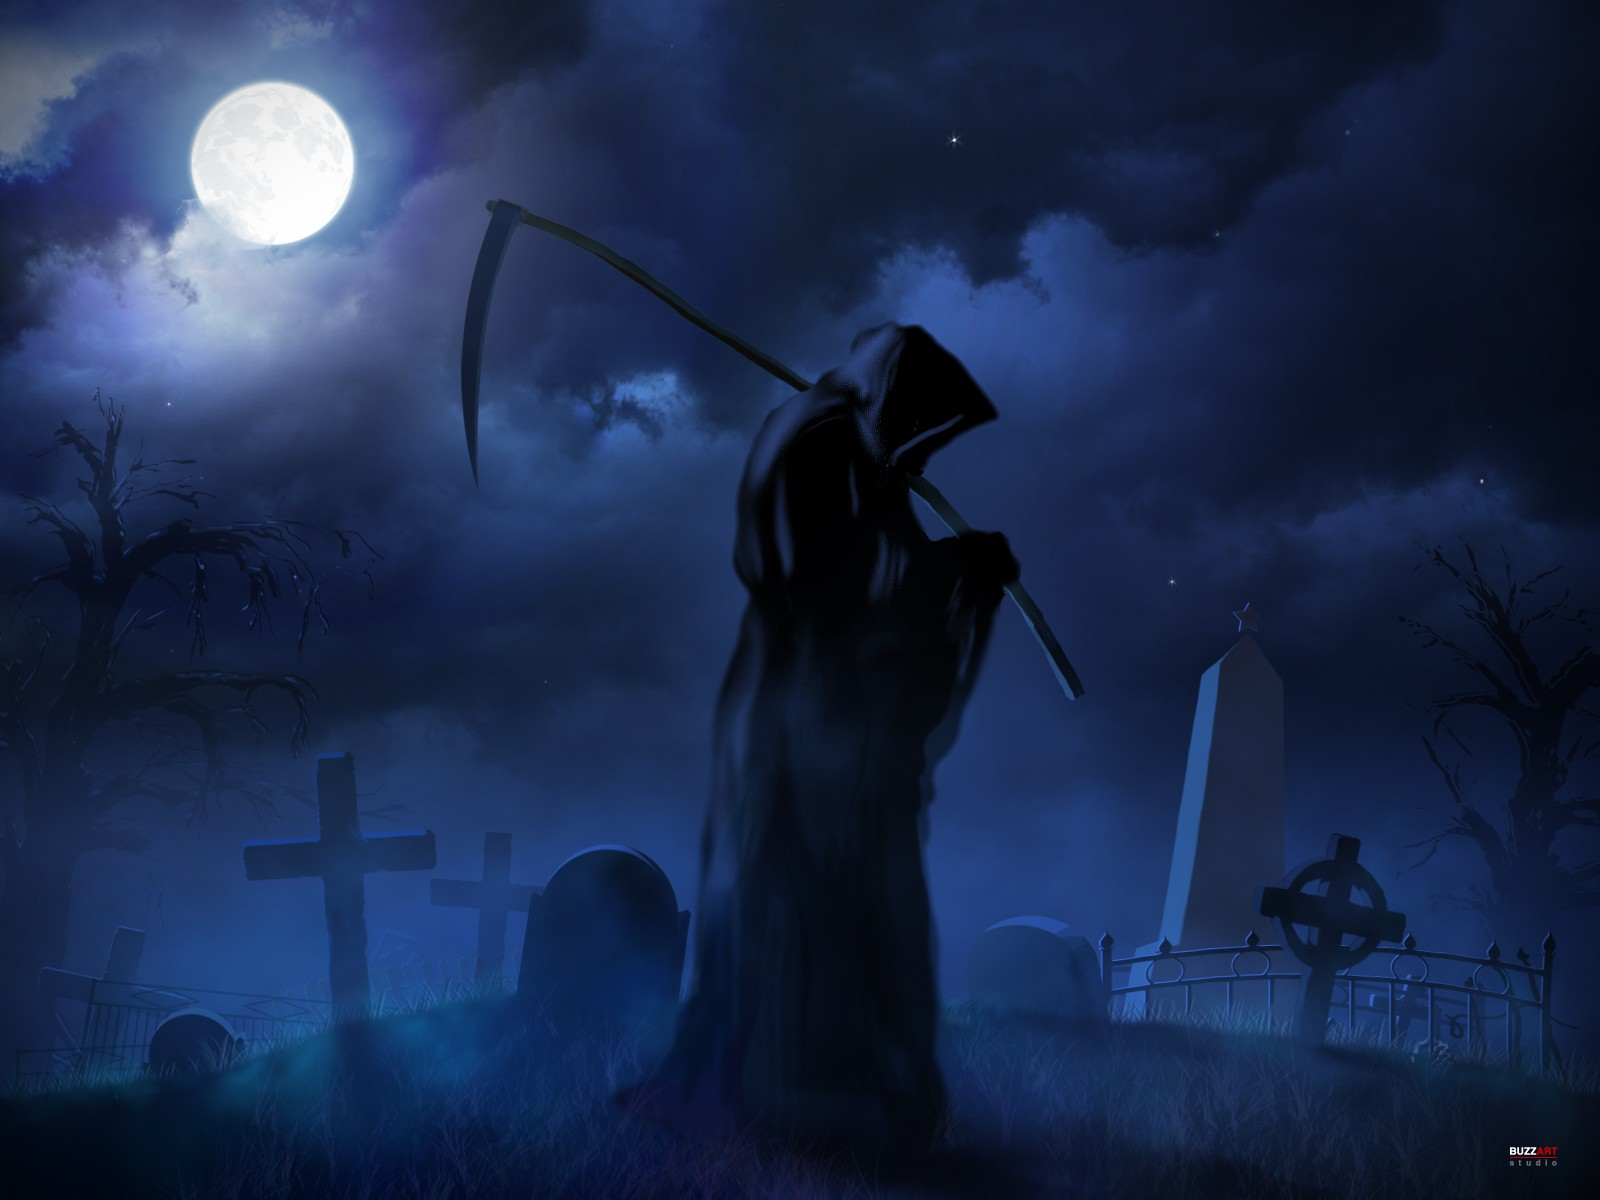 grim reaper Wallpaper Background 20442 1600x1200